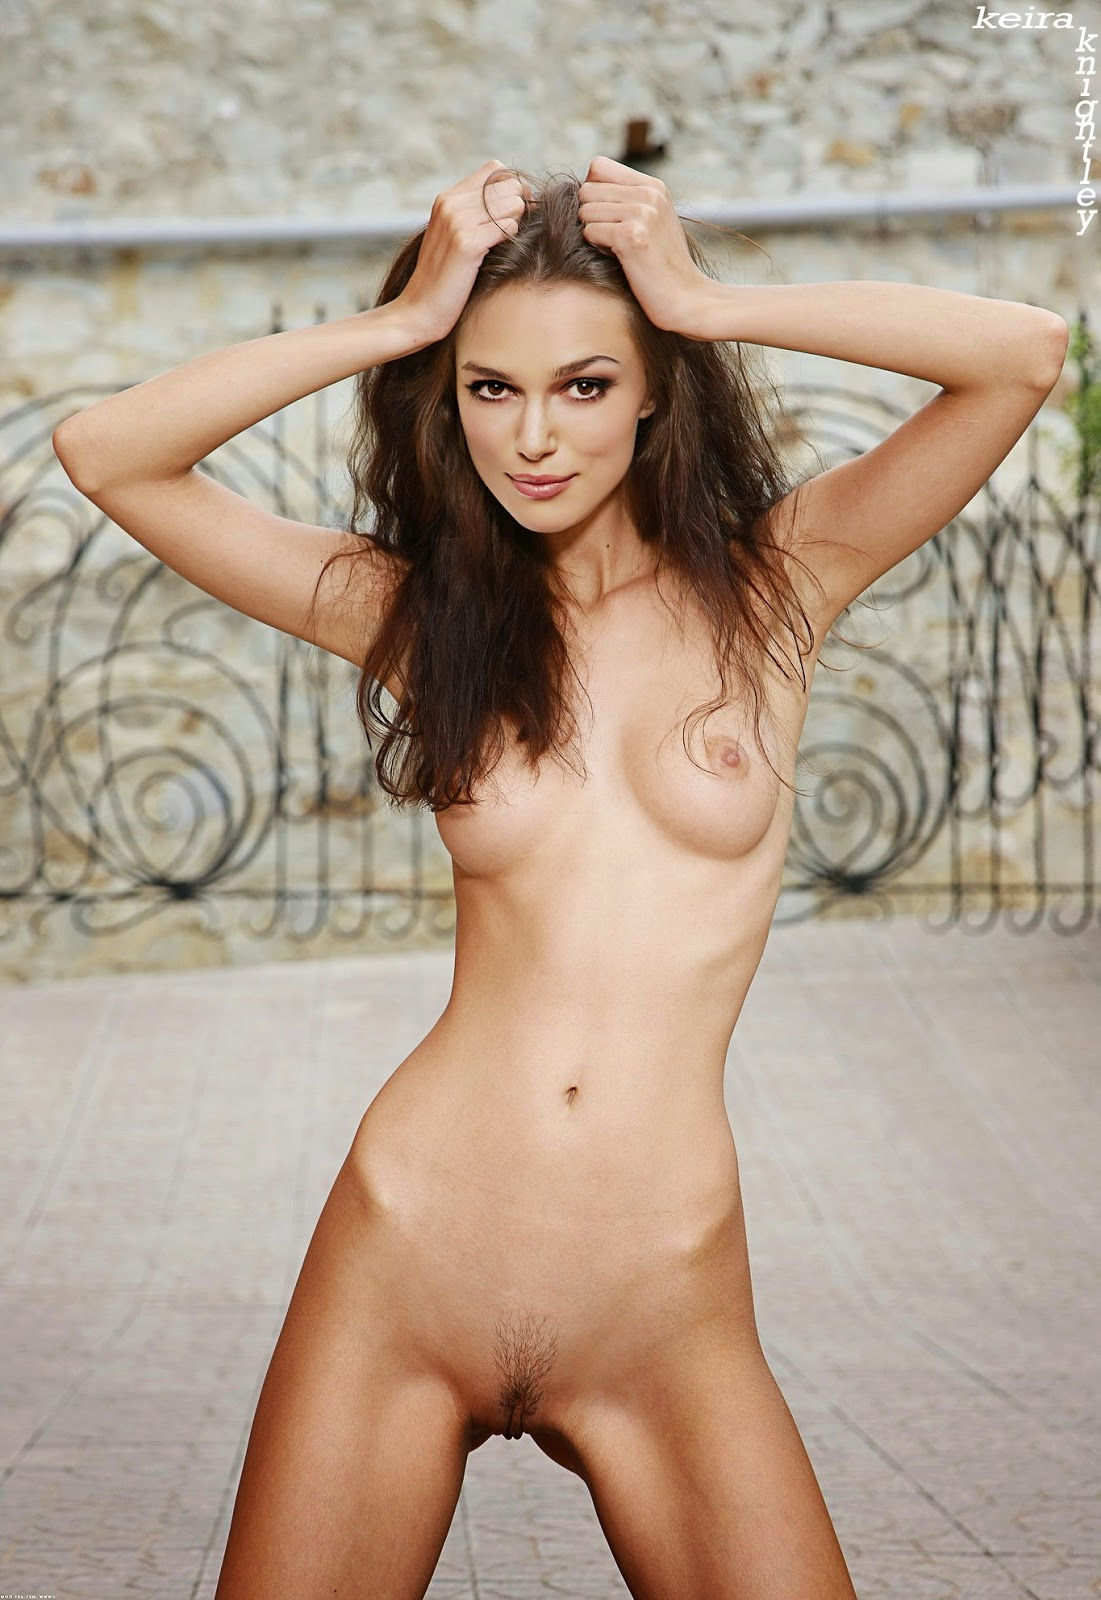 Keira knightley fake nude